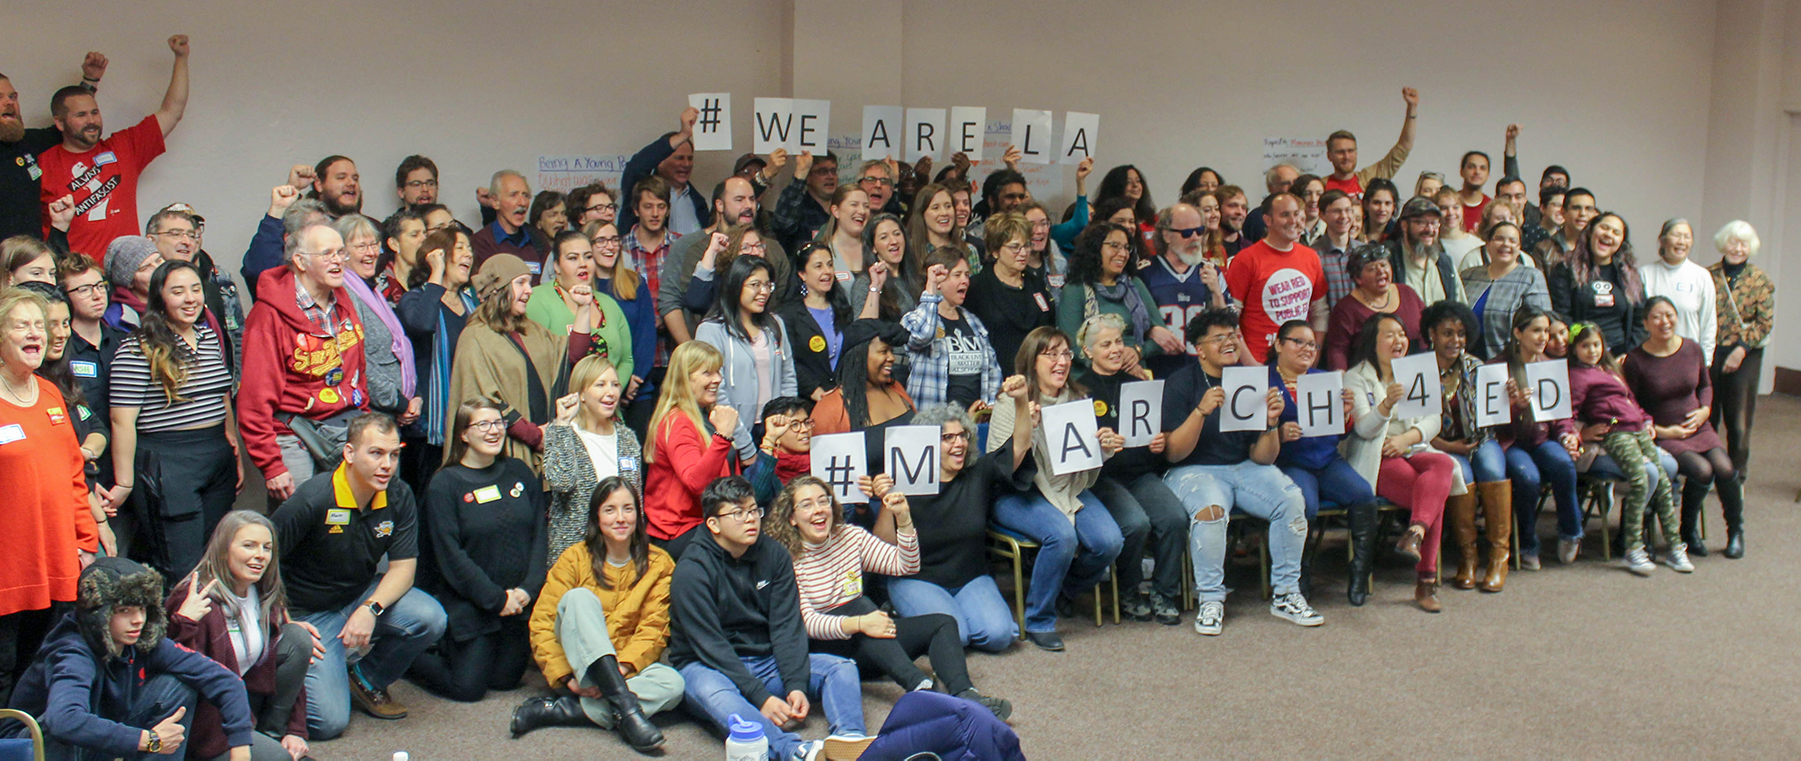 MEJA Winter Assembly stands in solidarity with the students, parents, and teachers of Los Angeles, CA. They gathered 50,000 people to march for public education on December 15th.